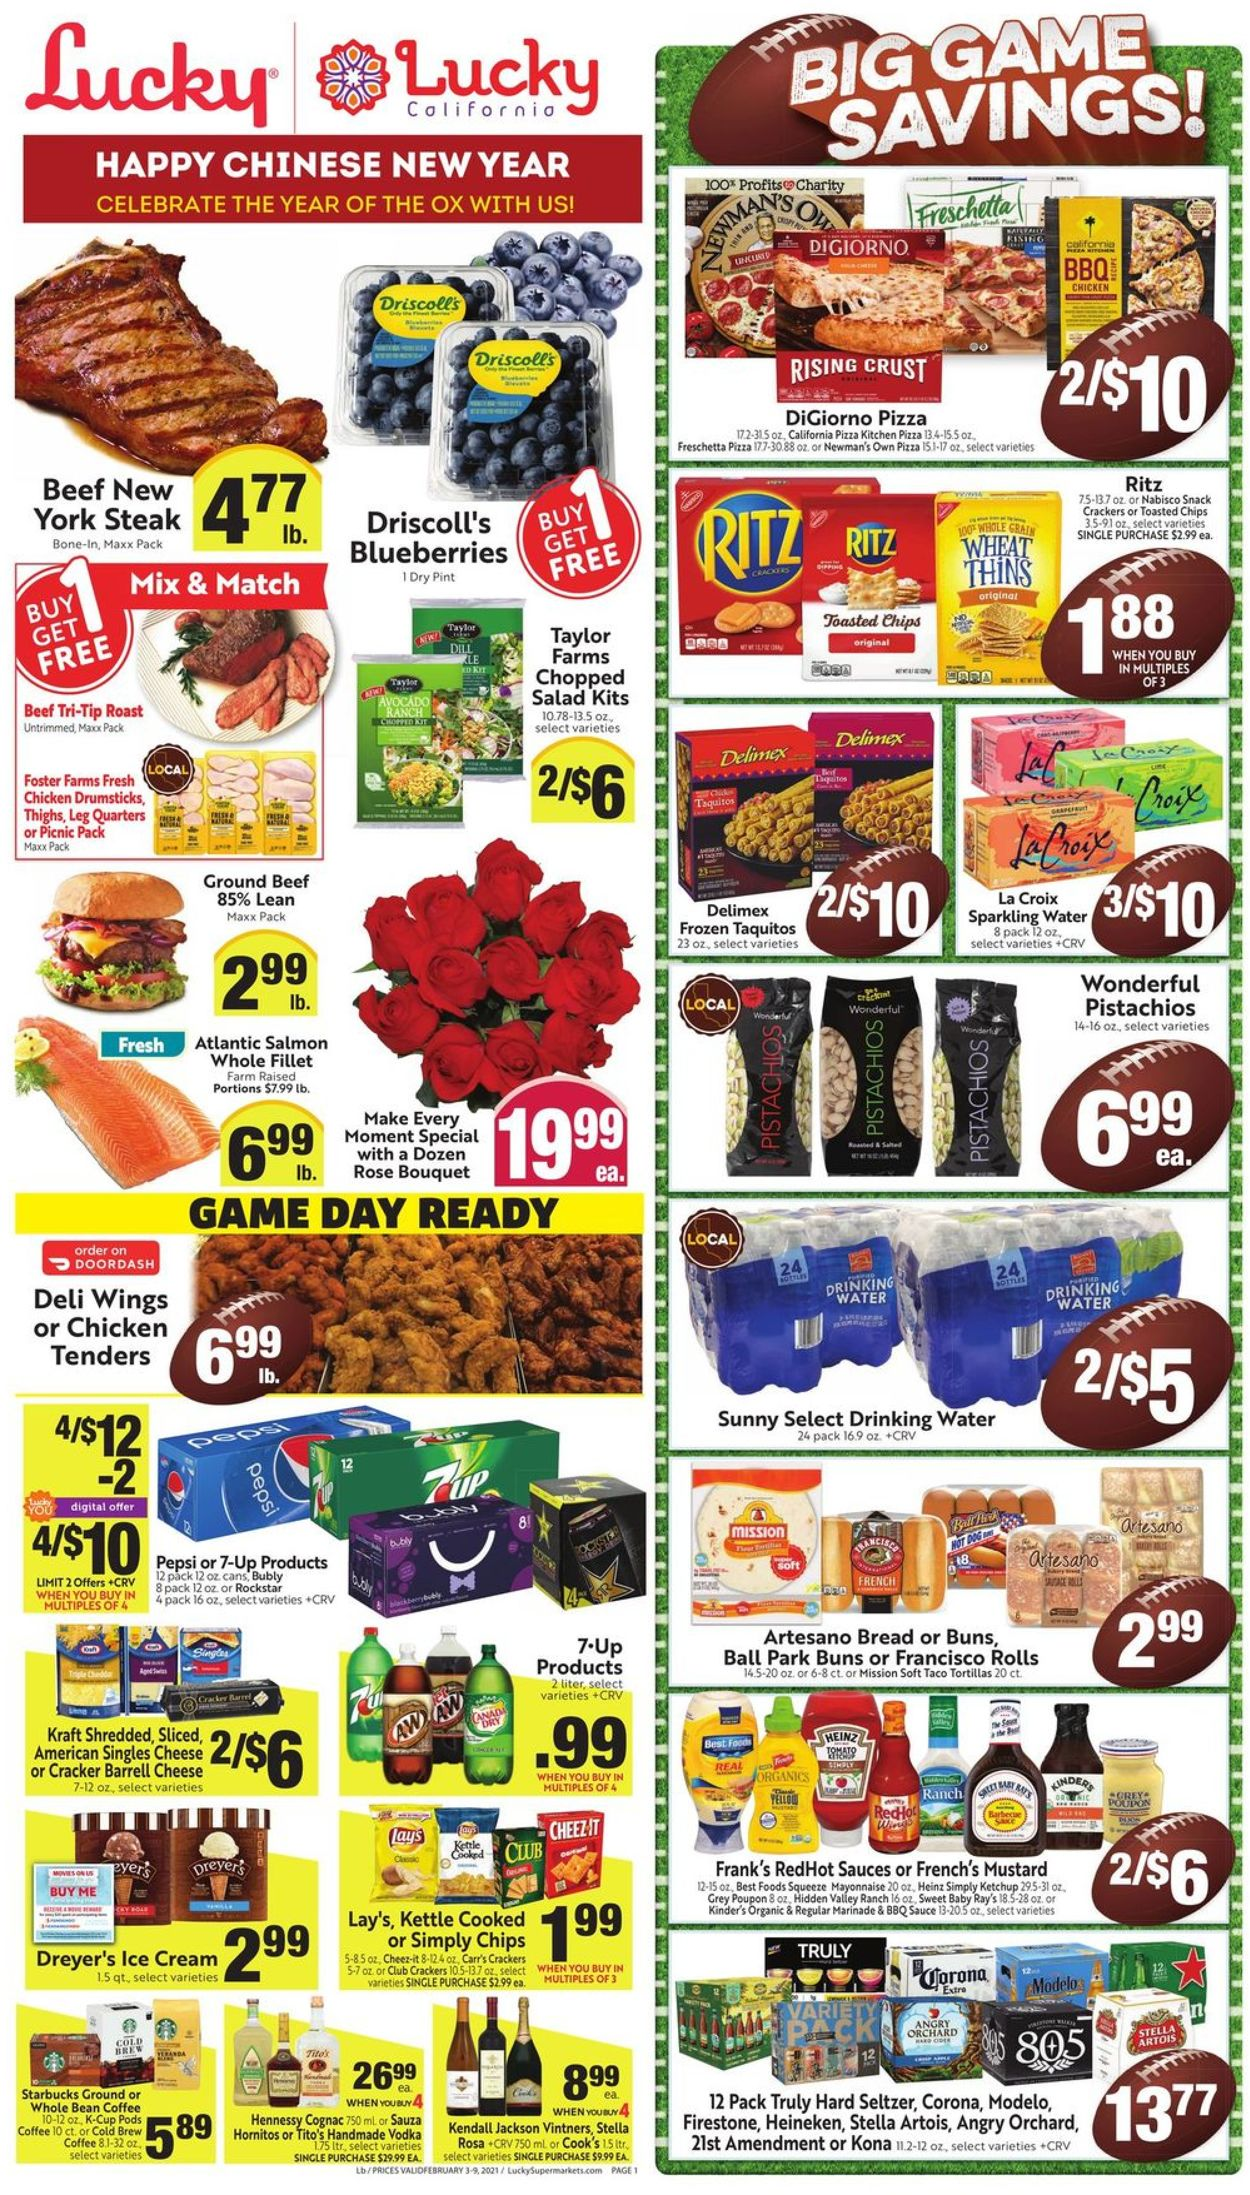 Lucky Supermarkets Weekly Ad Circular - valid 02/03-02/09/2021